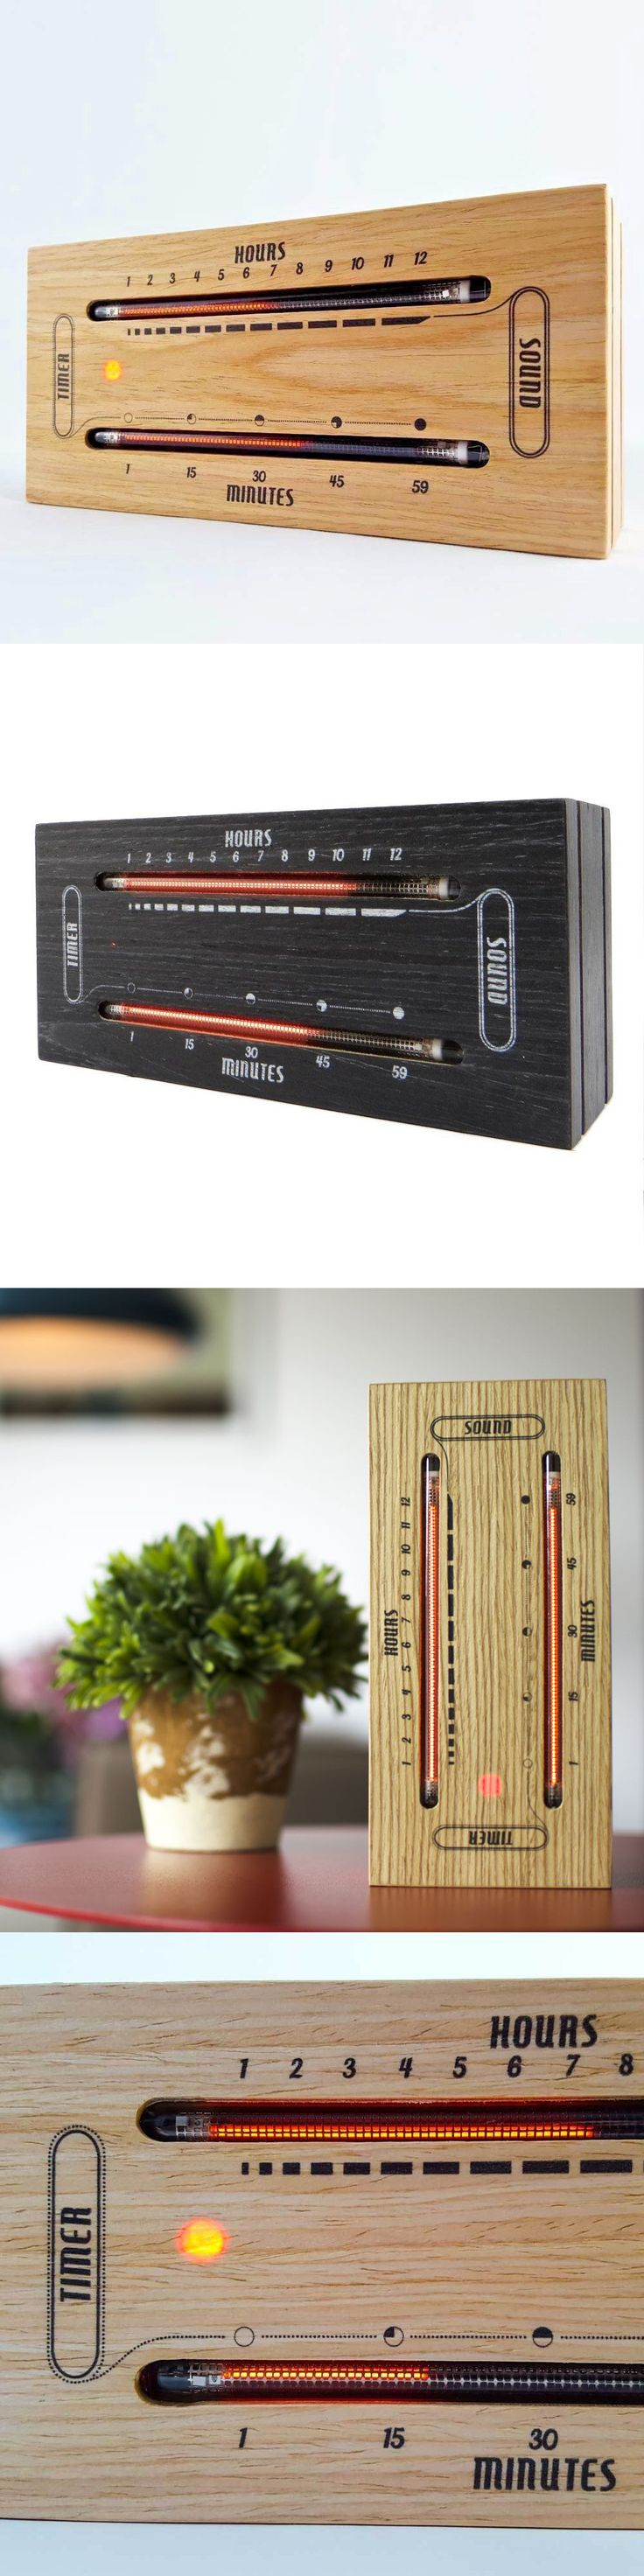 Desk Mantel and Shelf Clocks 175753: The Luminous Electronic Bargraph Clock - Retro Nixie Tube Clock Made By Nuvitron -> BUY IT NOW ONLY: $229 on eBay!